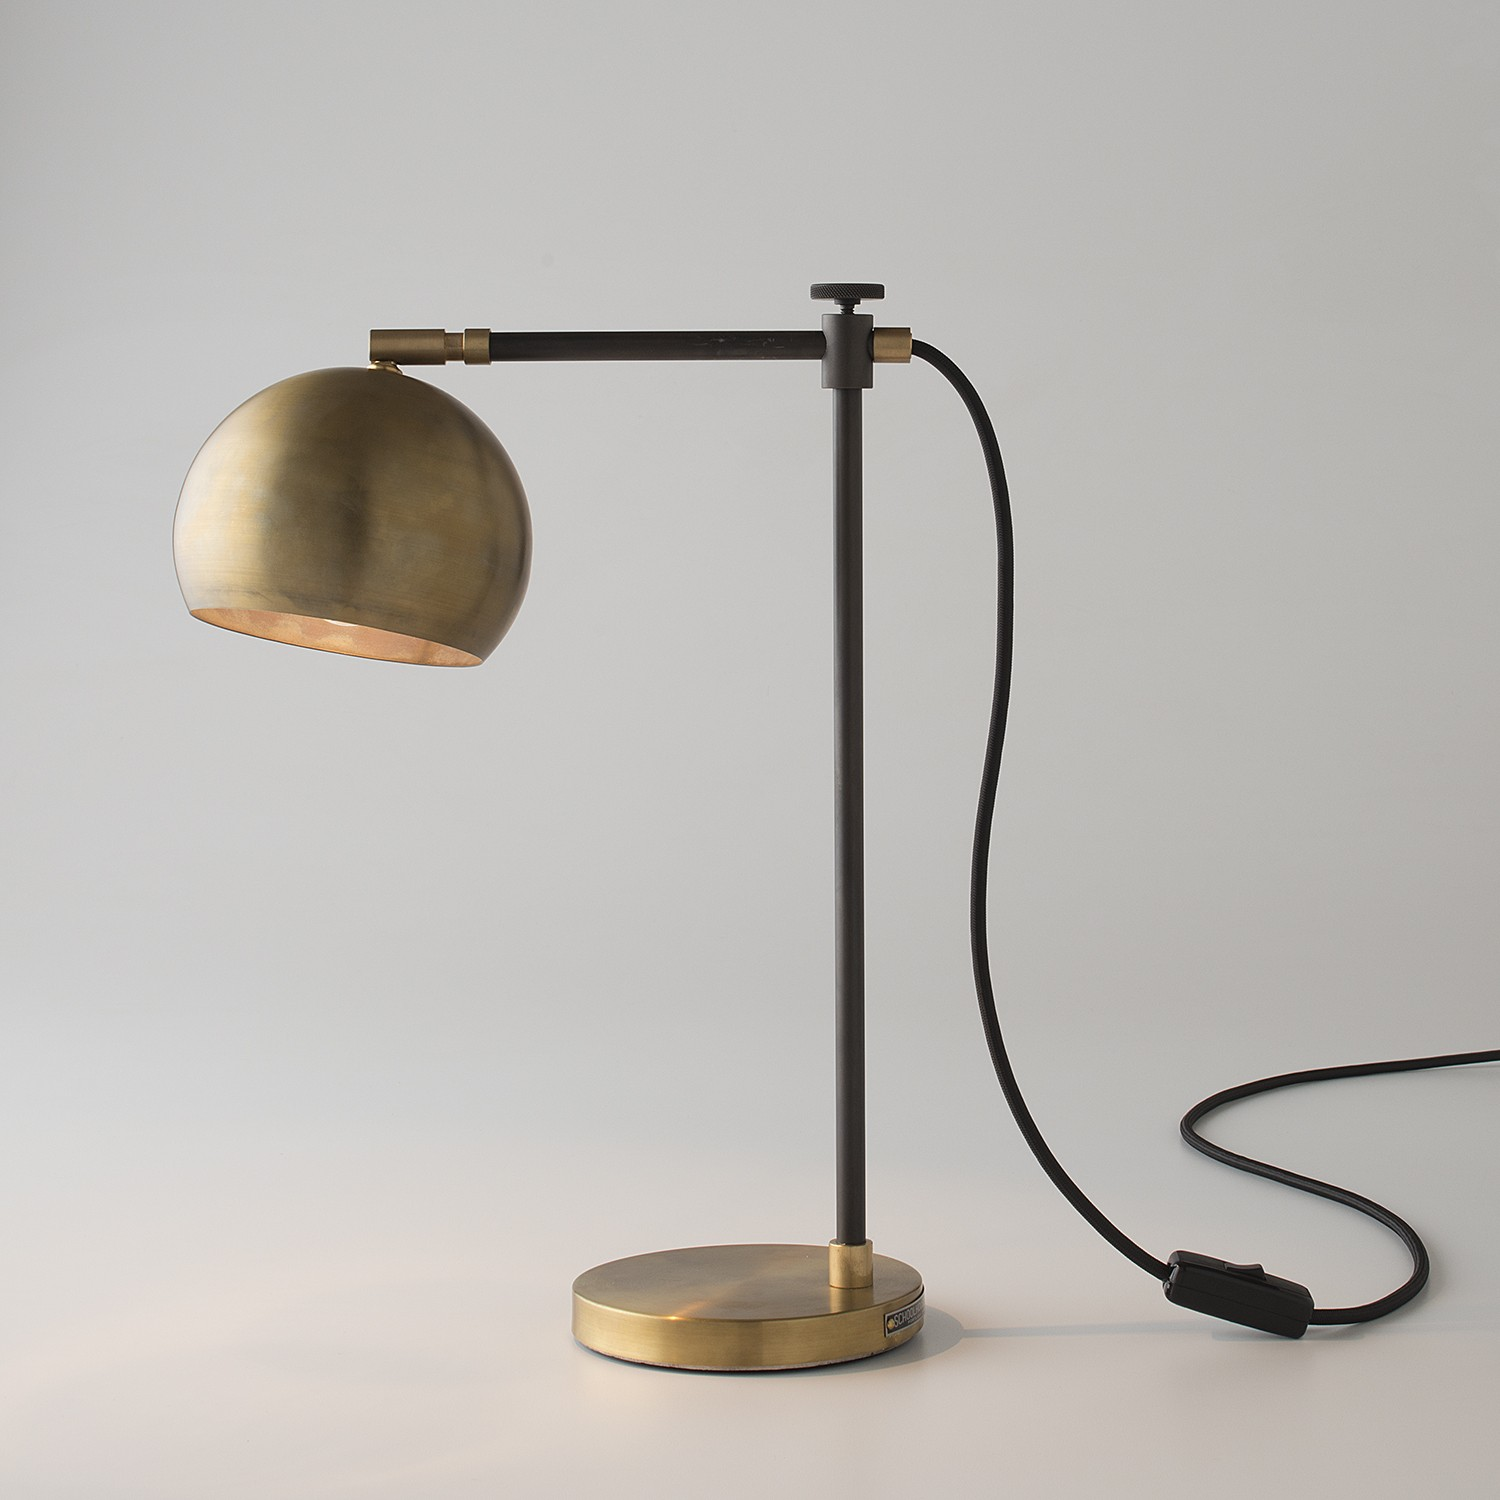 TO 10 Old desk lamps for bedrooms and studyrooms – Old Desk Lamps